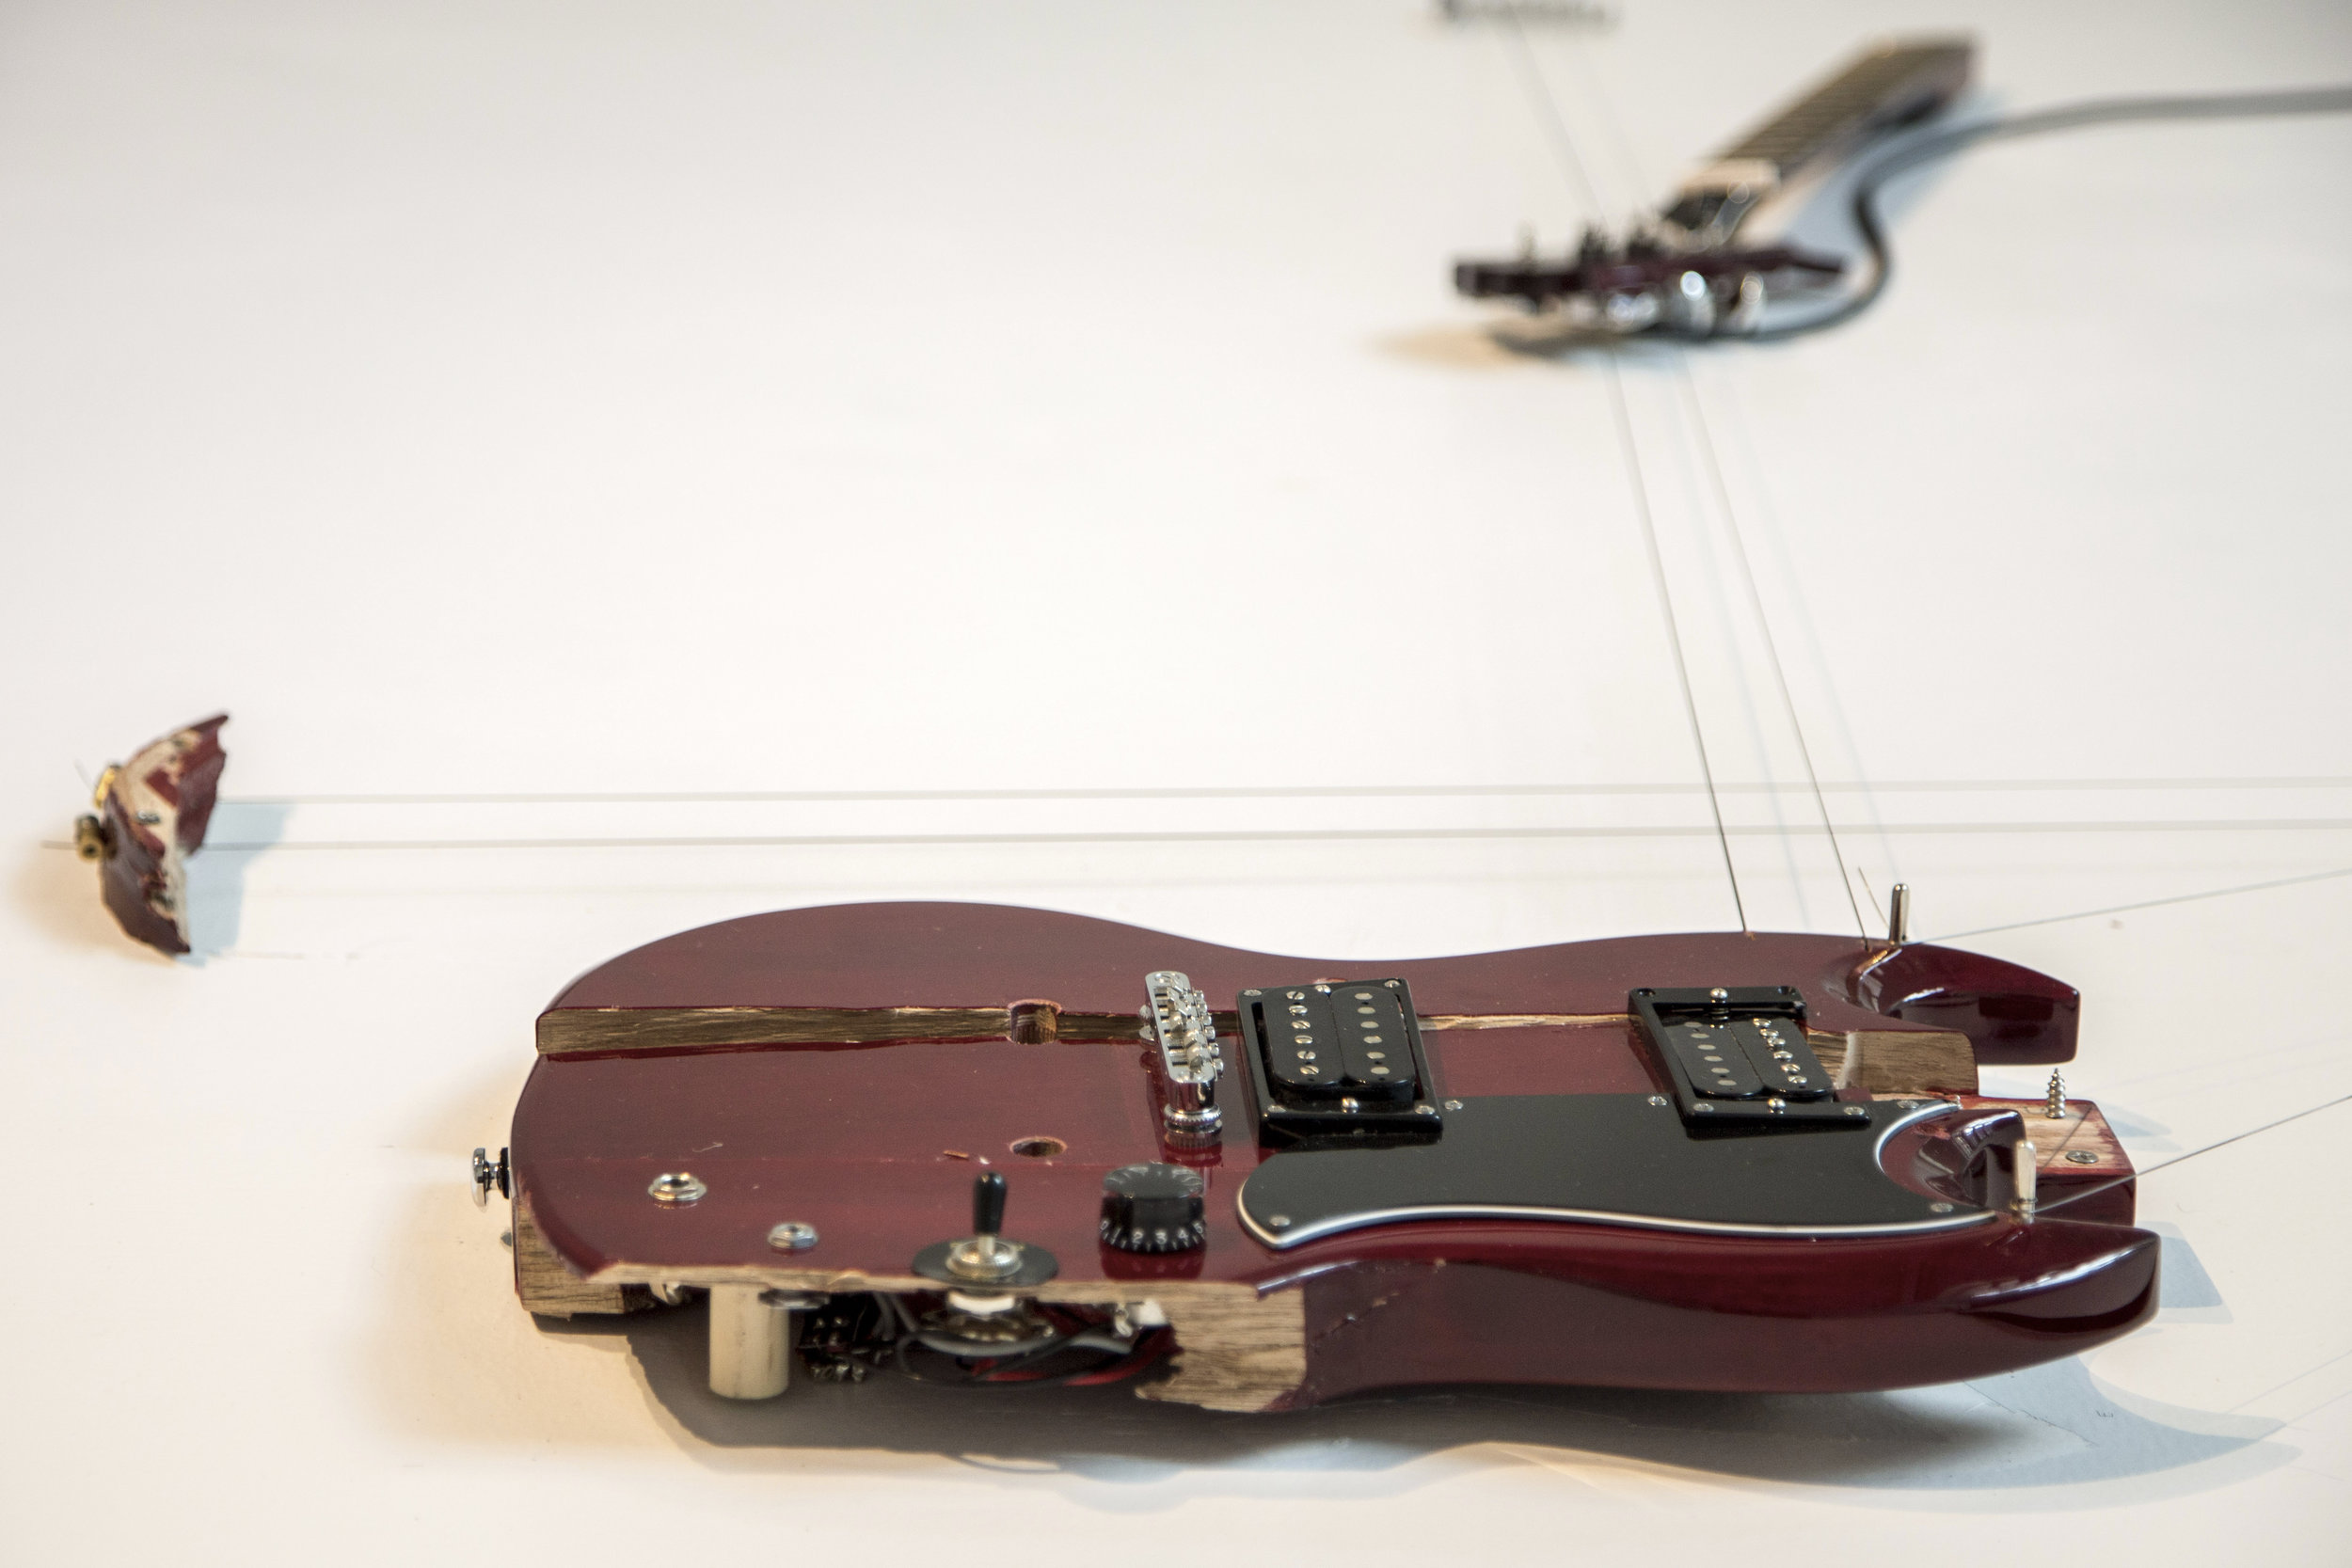 "Melody of Certain Damage #10, 2018, detail, broken electric guitar, strings, microphone, screws and amplifier, 73"" x 41"" x 3"". Image by Loló Bonfanti"